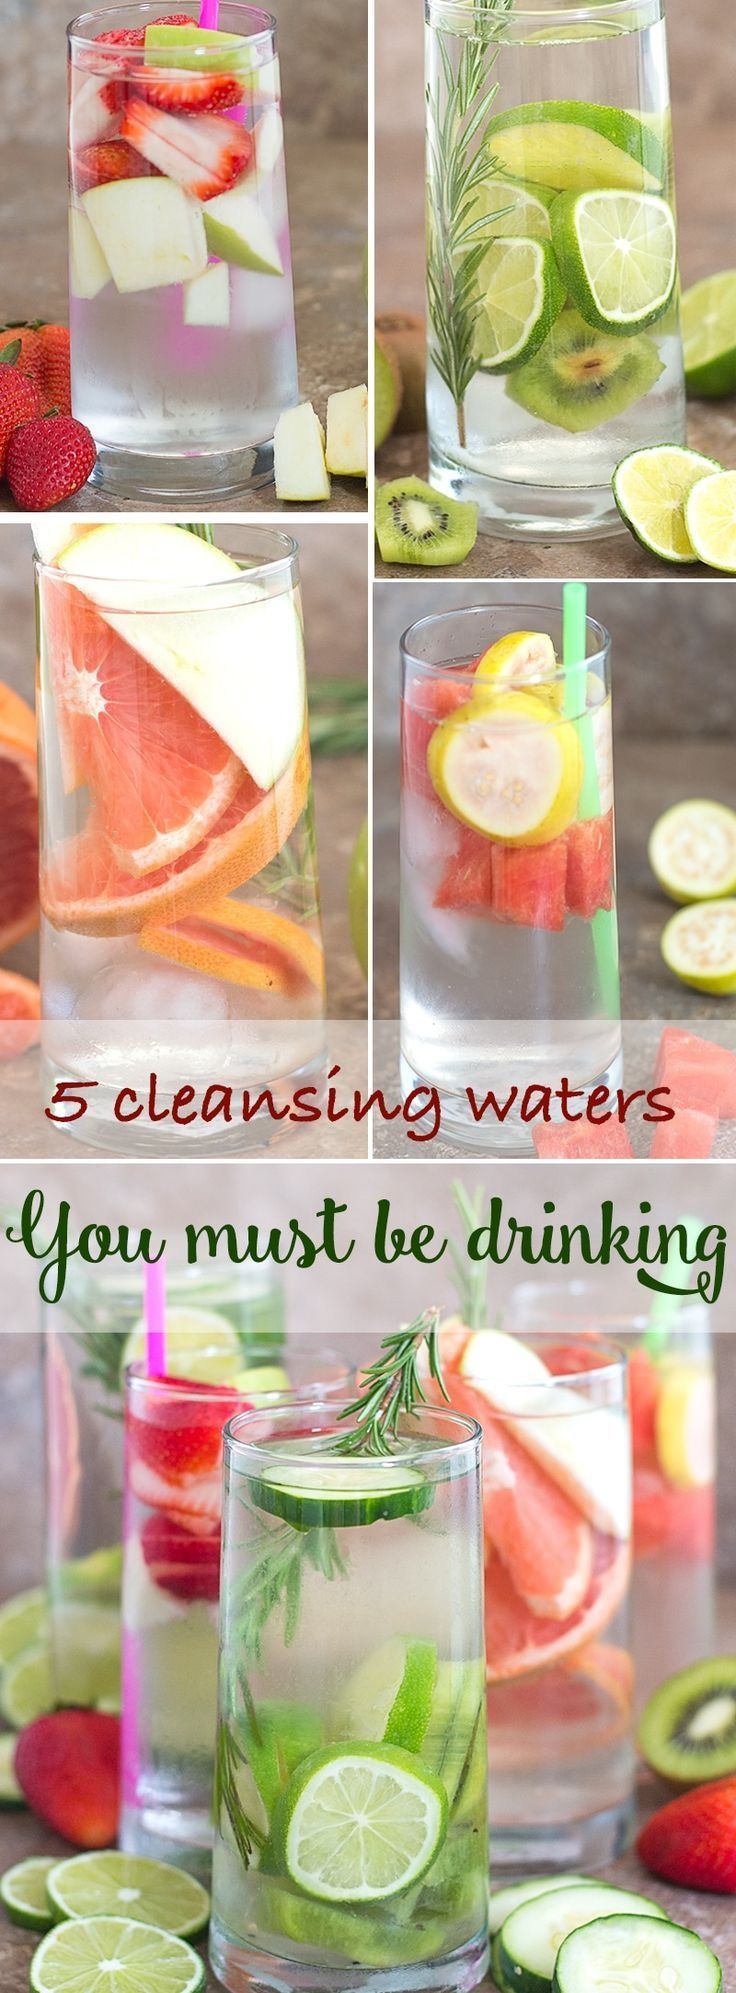 5 delicious summer cleansing waters that you should be drinking everyday to stay hydrated #AD #PureLife35pk